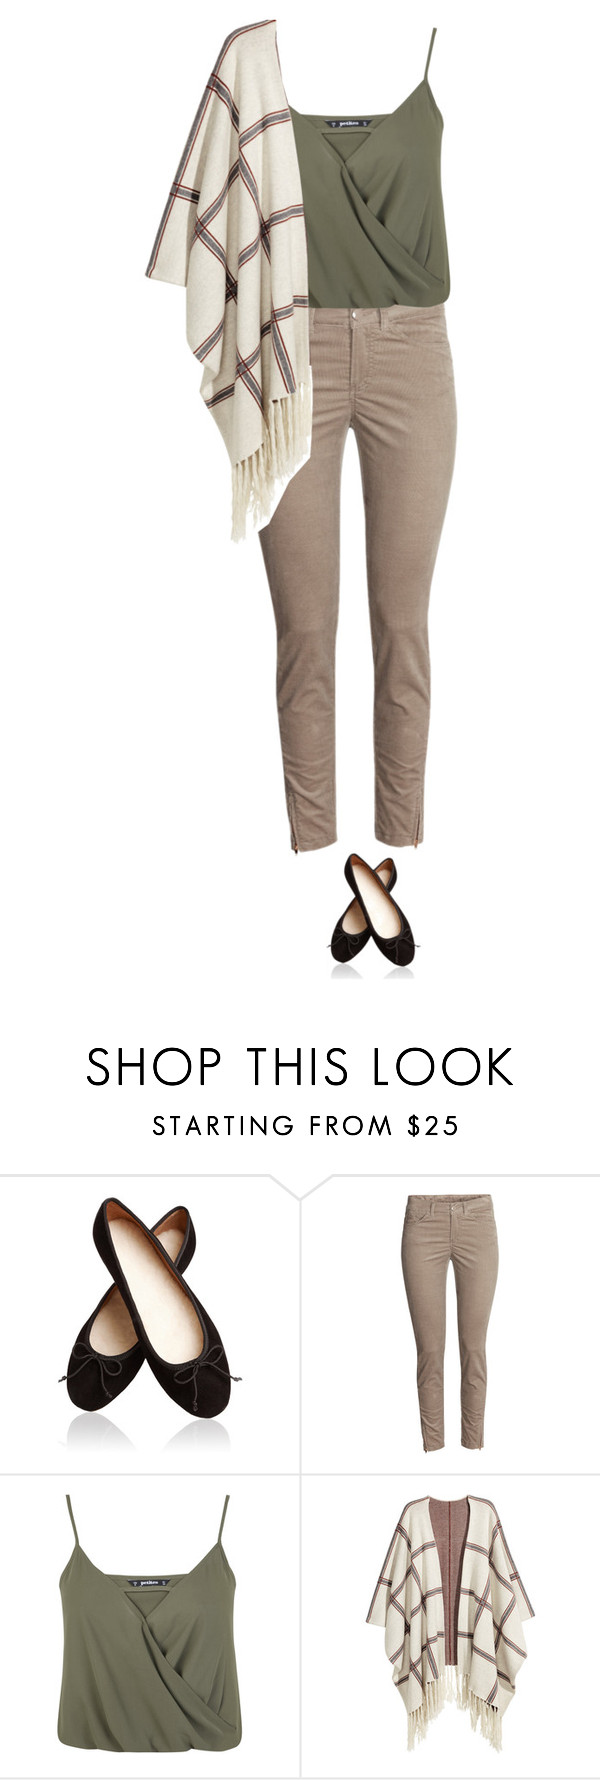 """""""Sin título #4903"""" by xoxominyeol ❤ liked on Polyvore featuring H&M and Miss Selfridge"""